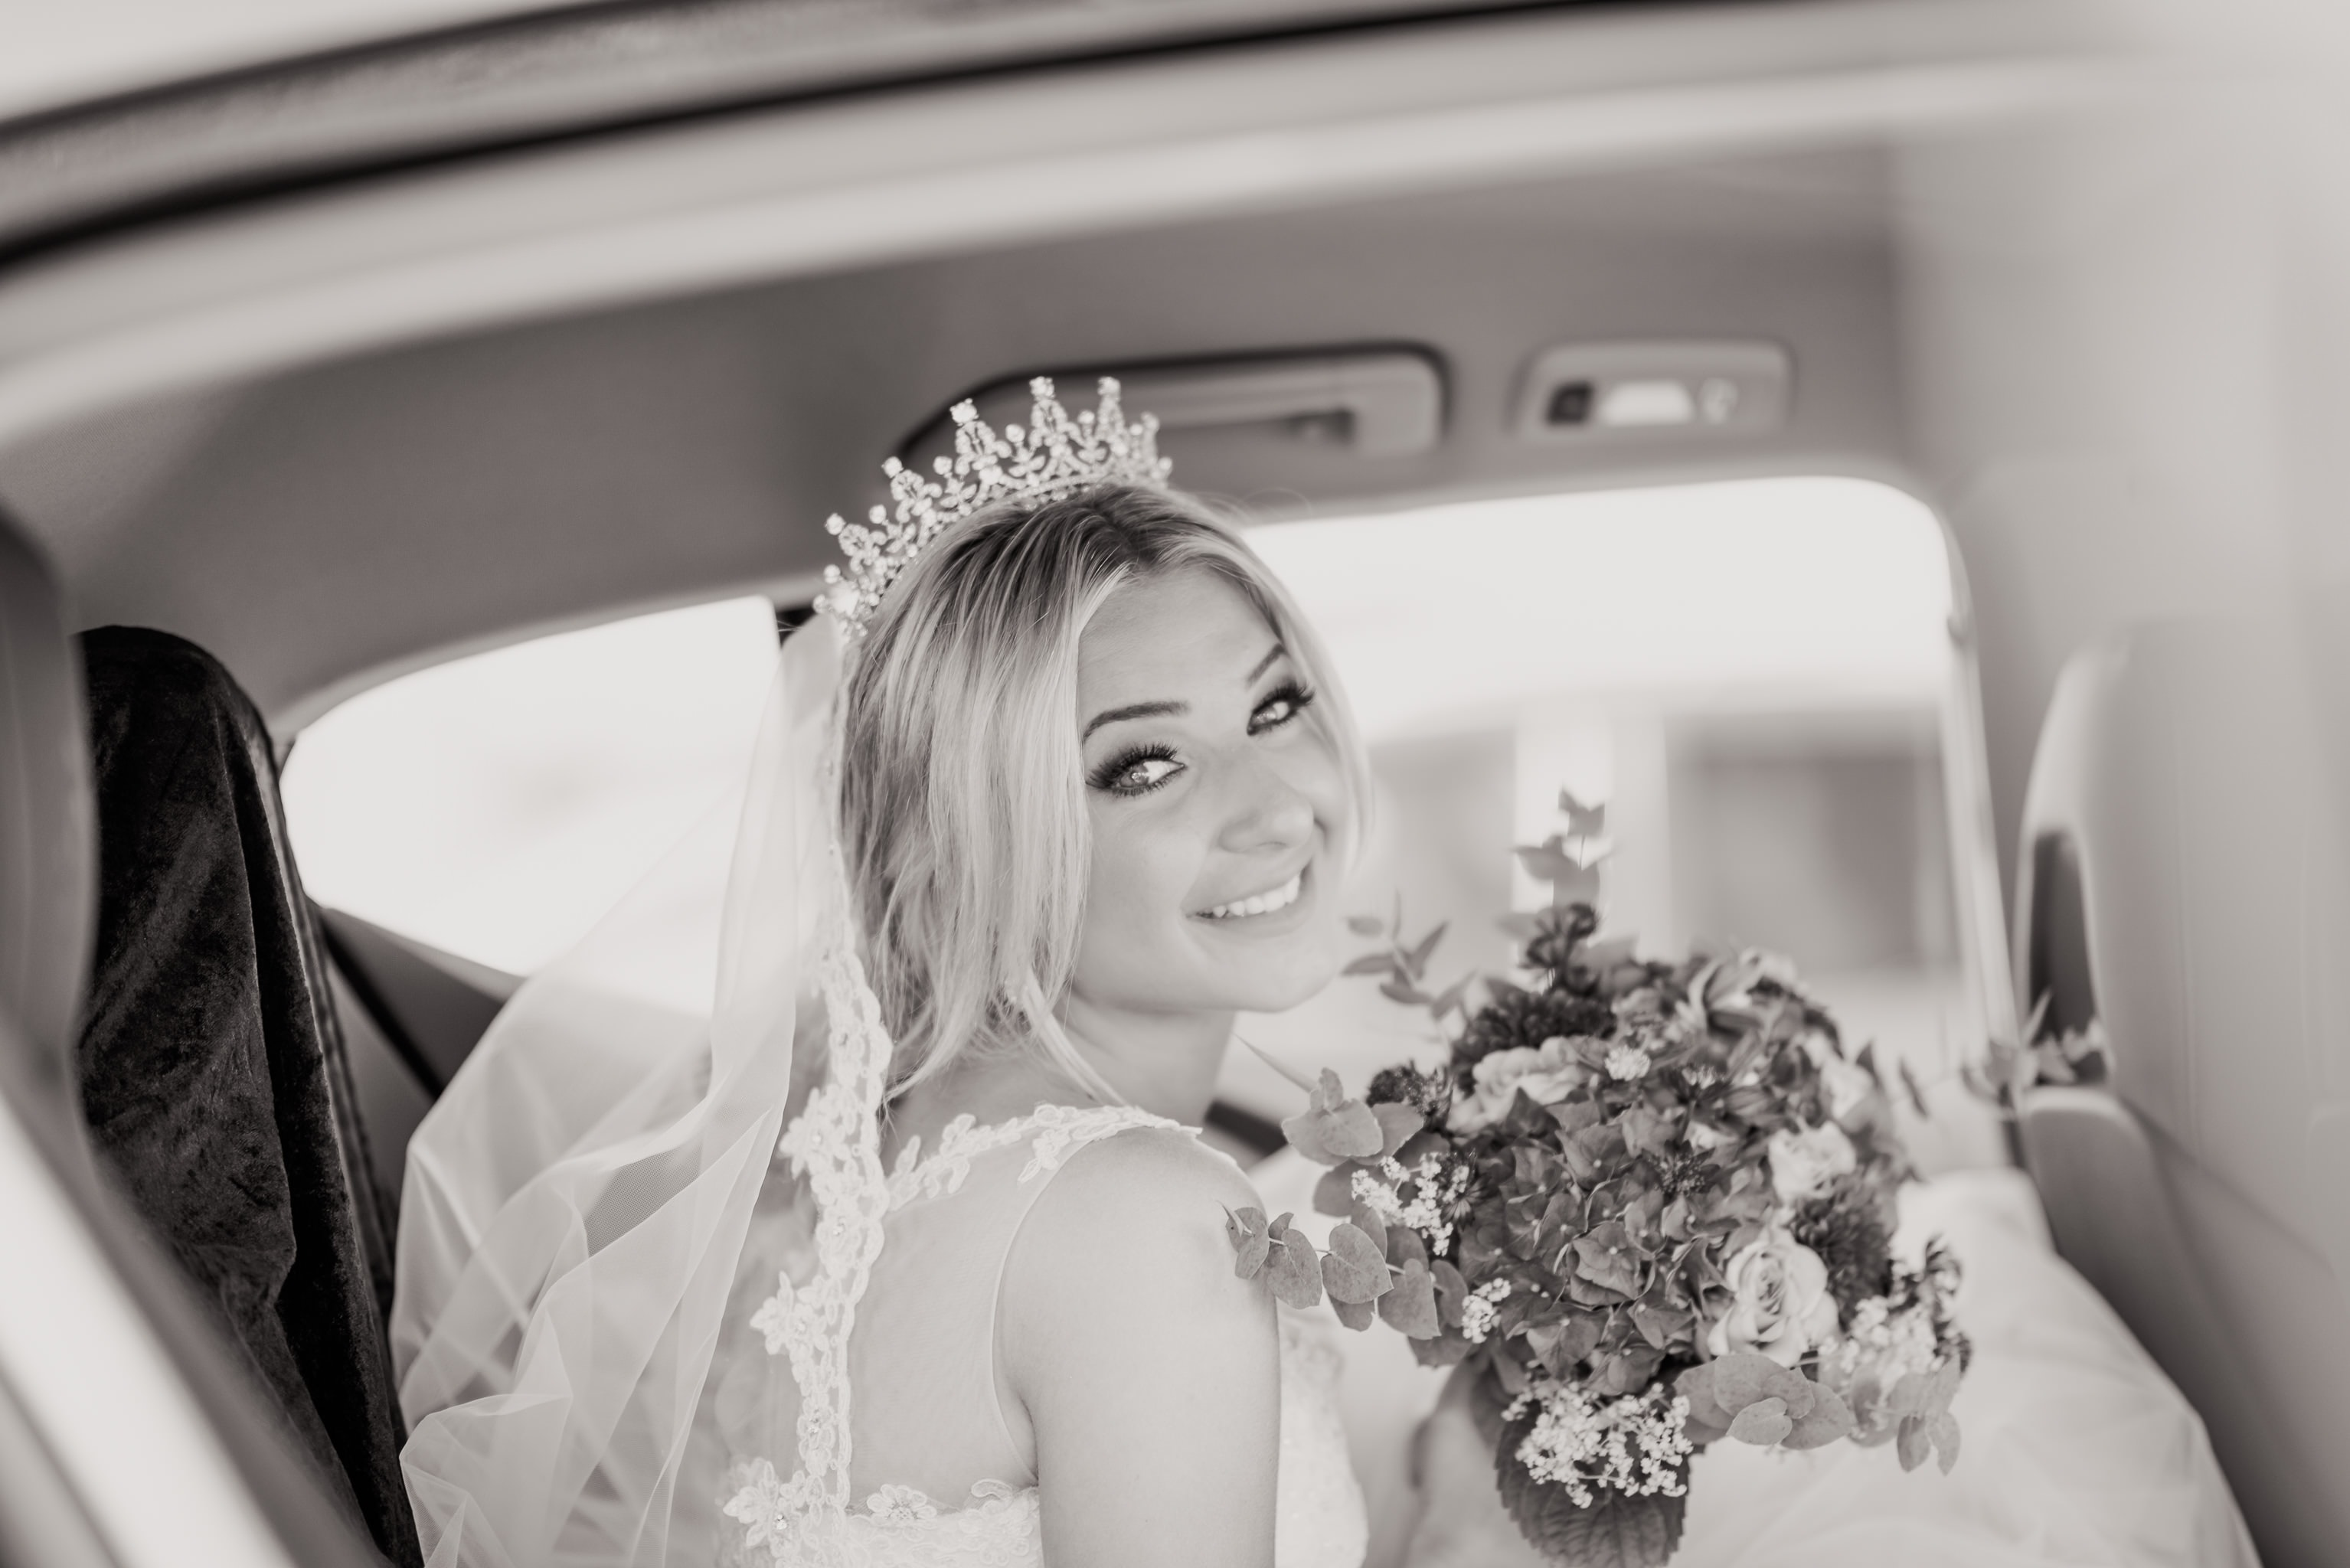 A bride holding flowers while looking at the camera, getting into a vehicle.